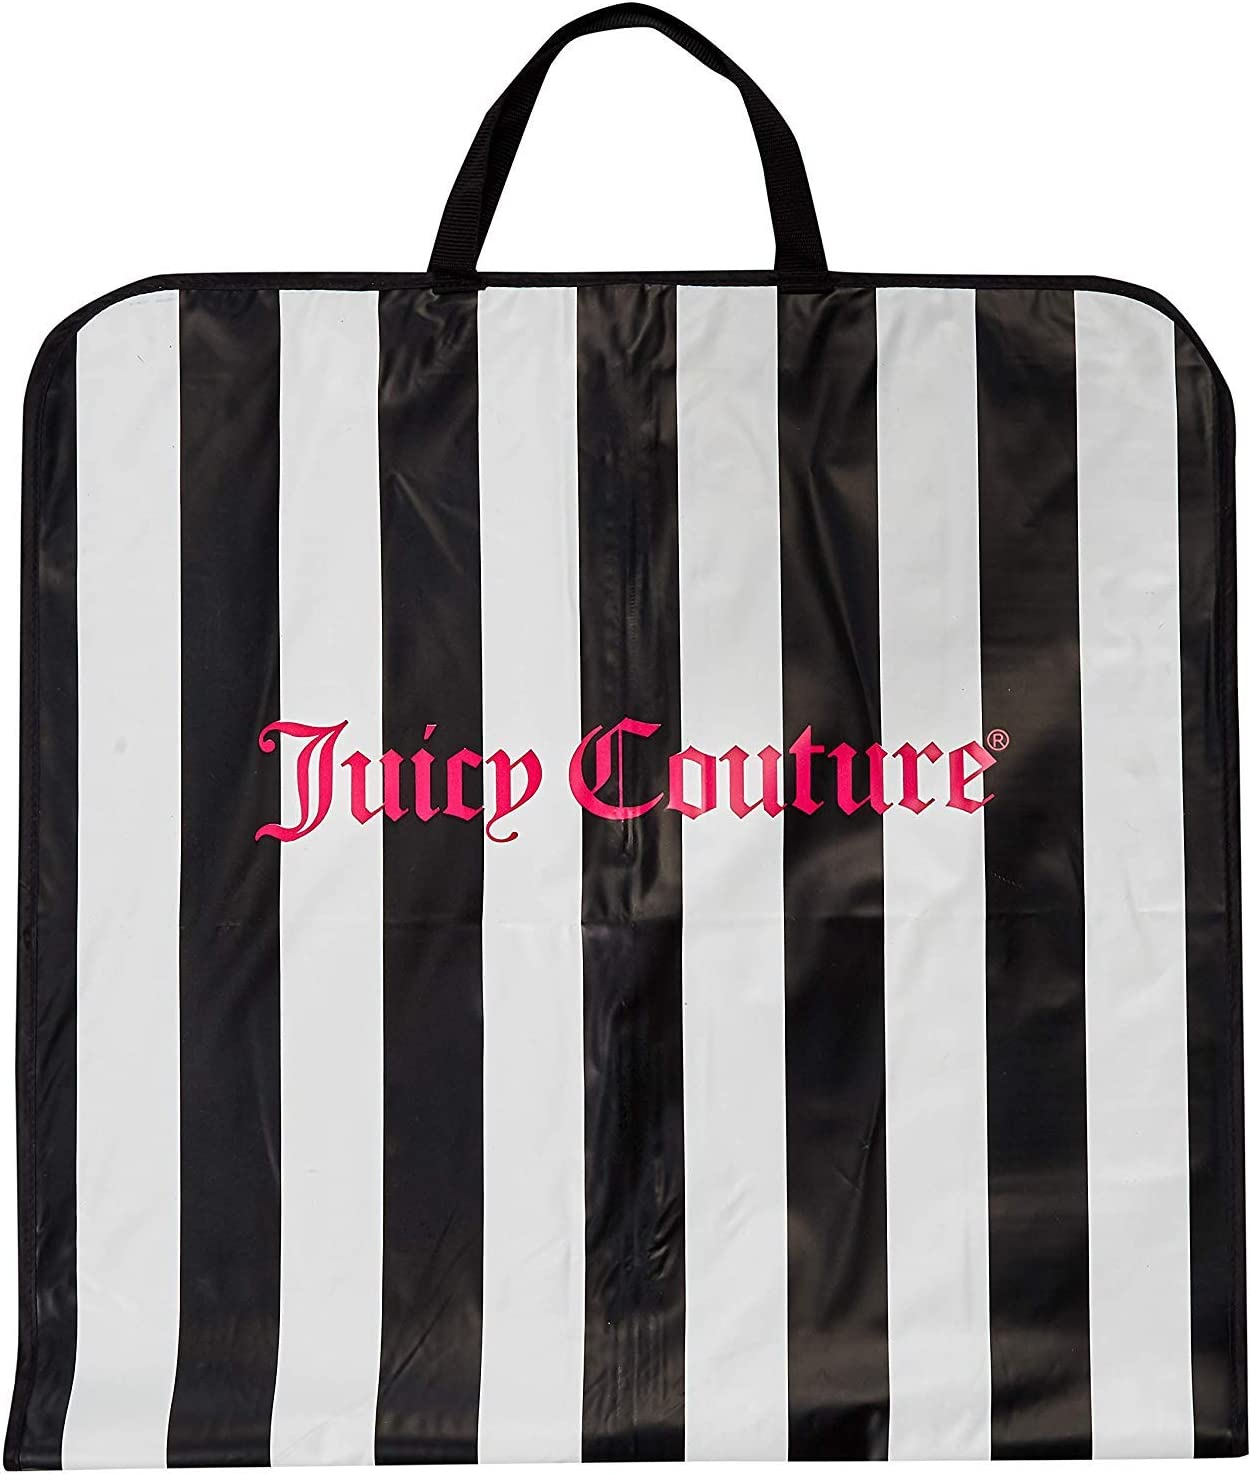 Juicy mart Couture 49